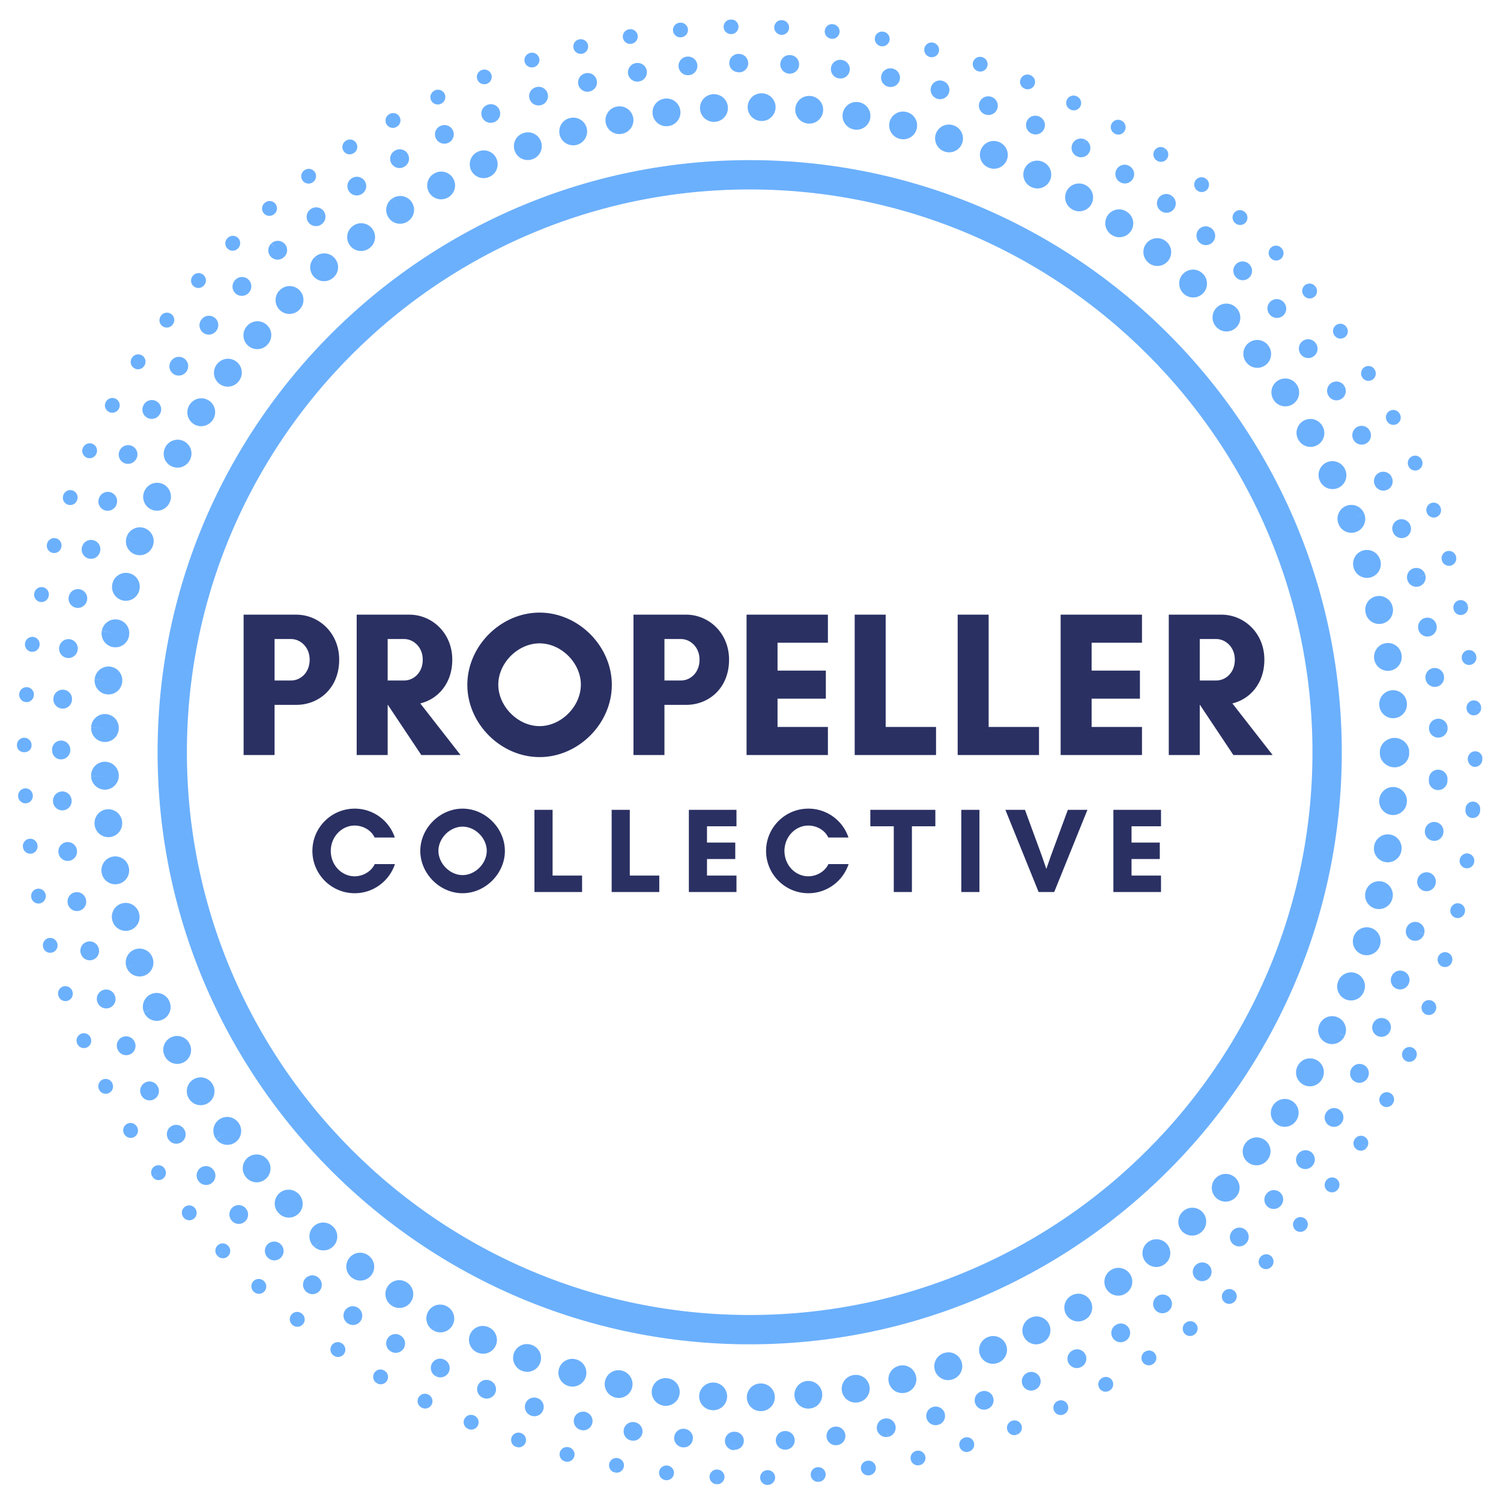 Propeller Collective